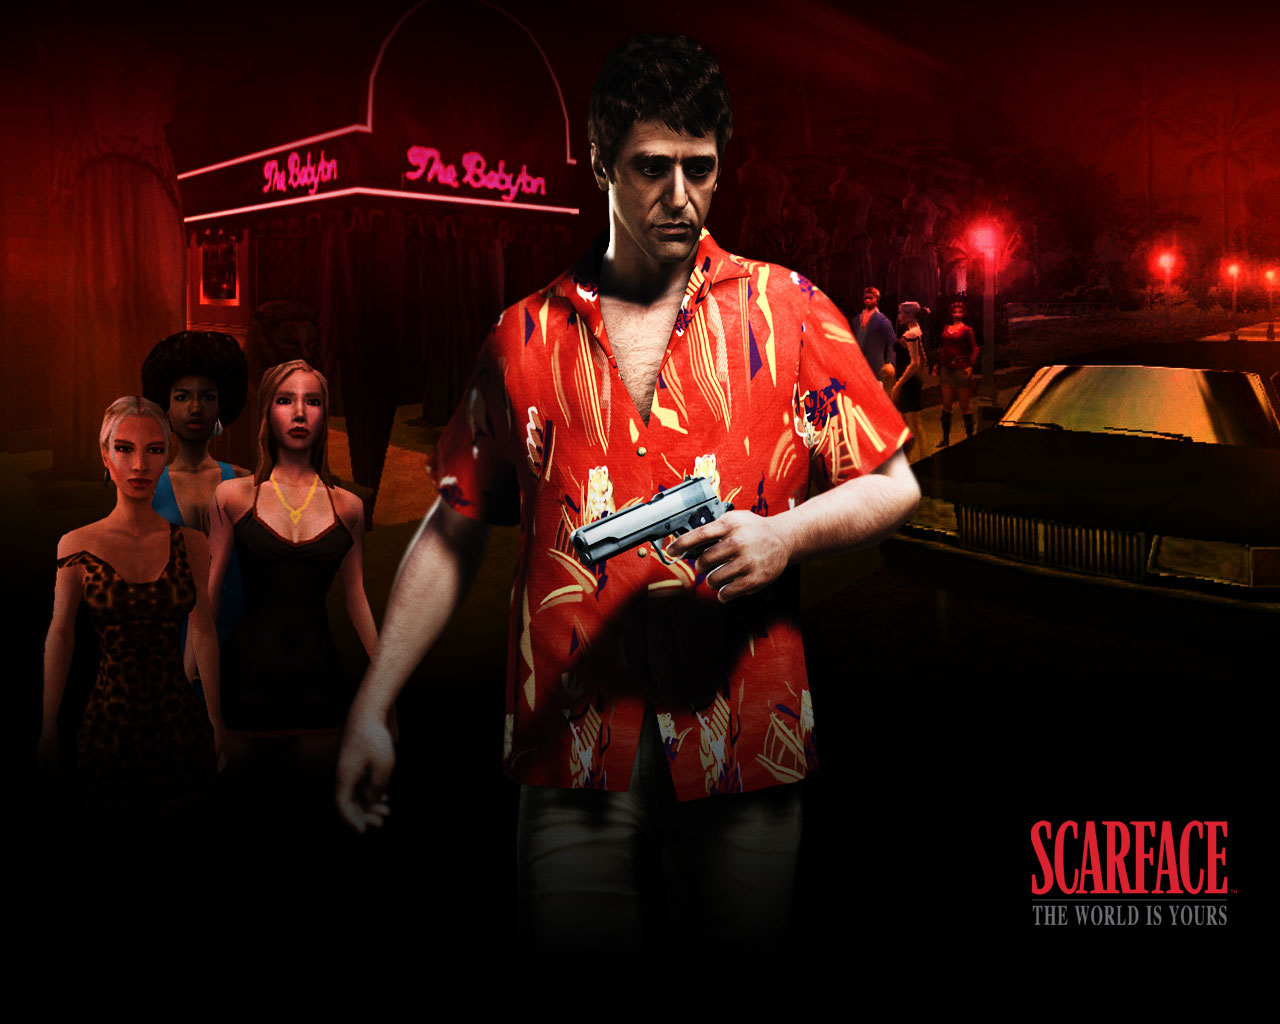 scarface game pc download